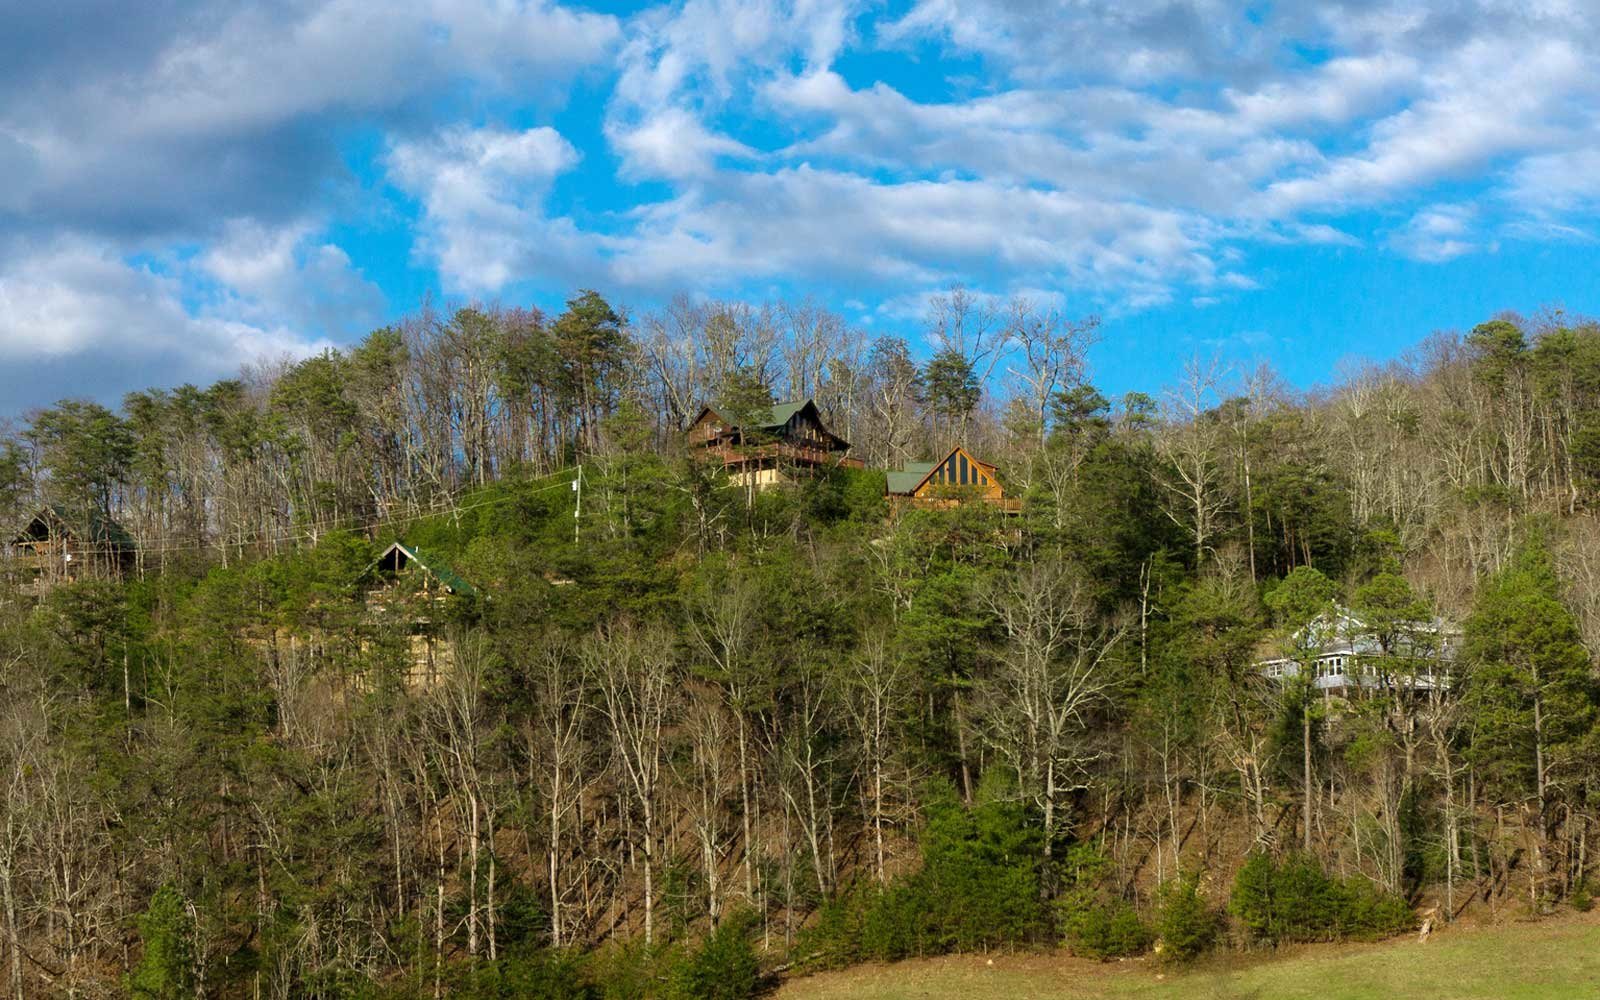 Cabin Rentals in Pigeon Forge, Tennessee